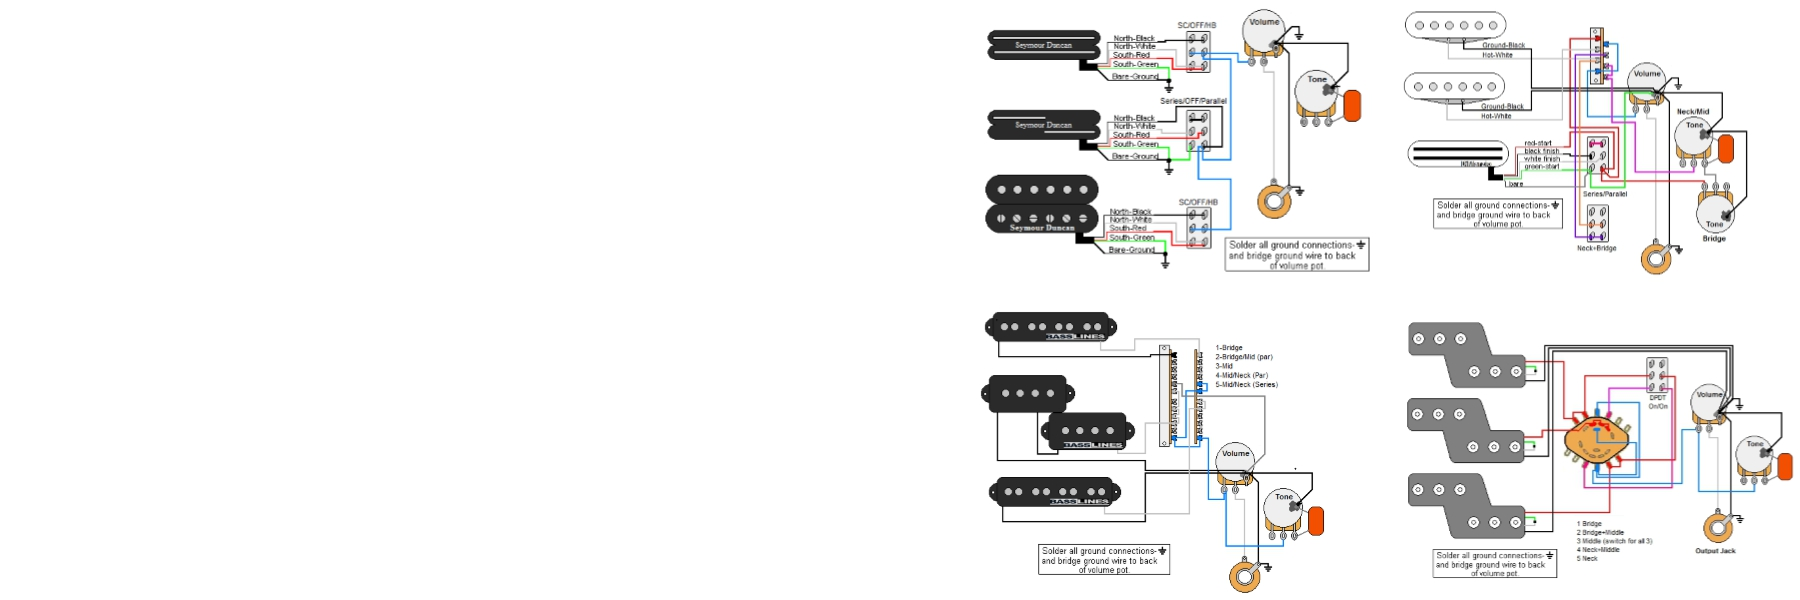 Charvel Bass Wiring Diagram The Portal And Forum Of Humbucker As Well Rickenbacker Guitar With Active Pickups Third Level Rh 9 14 13 Jacobwinterstein Com Je 2000ph Eliminator